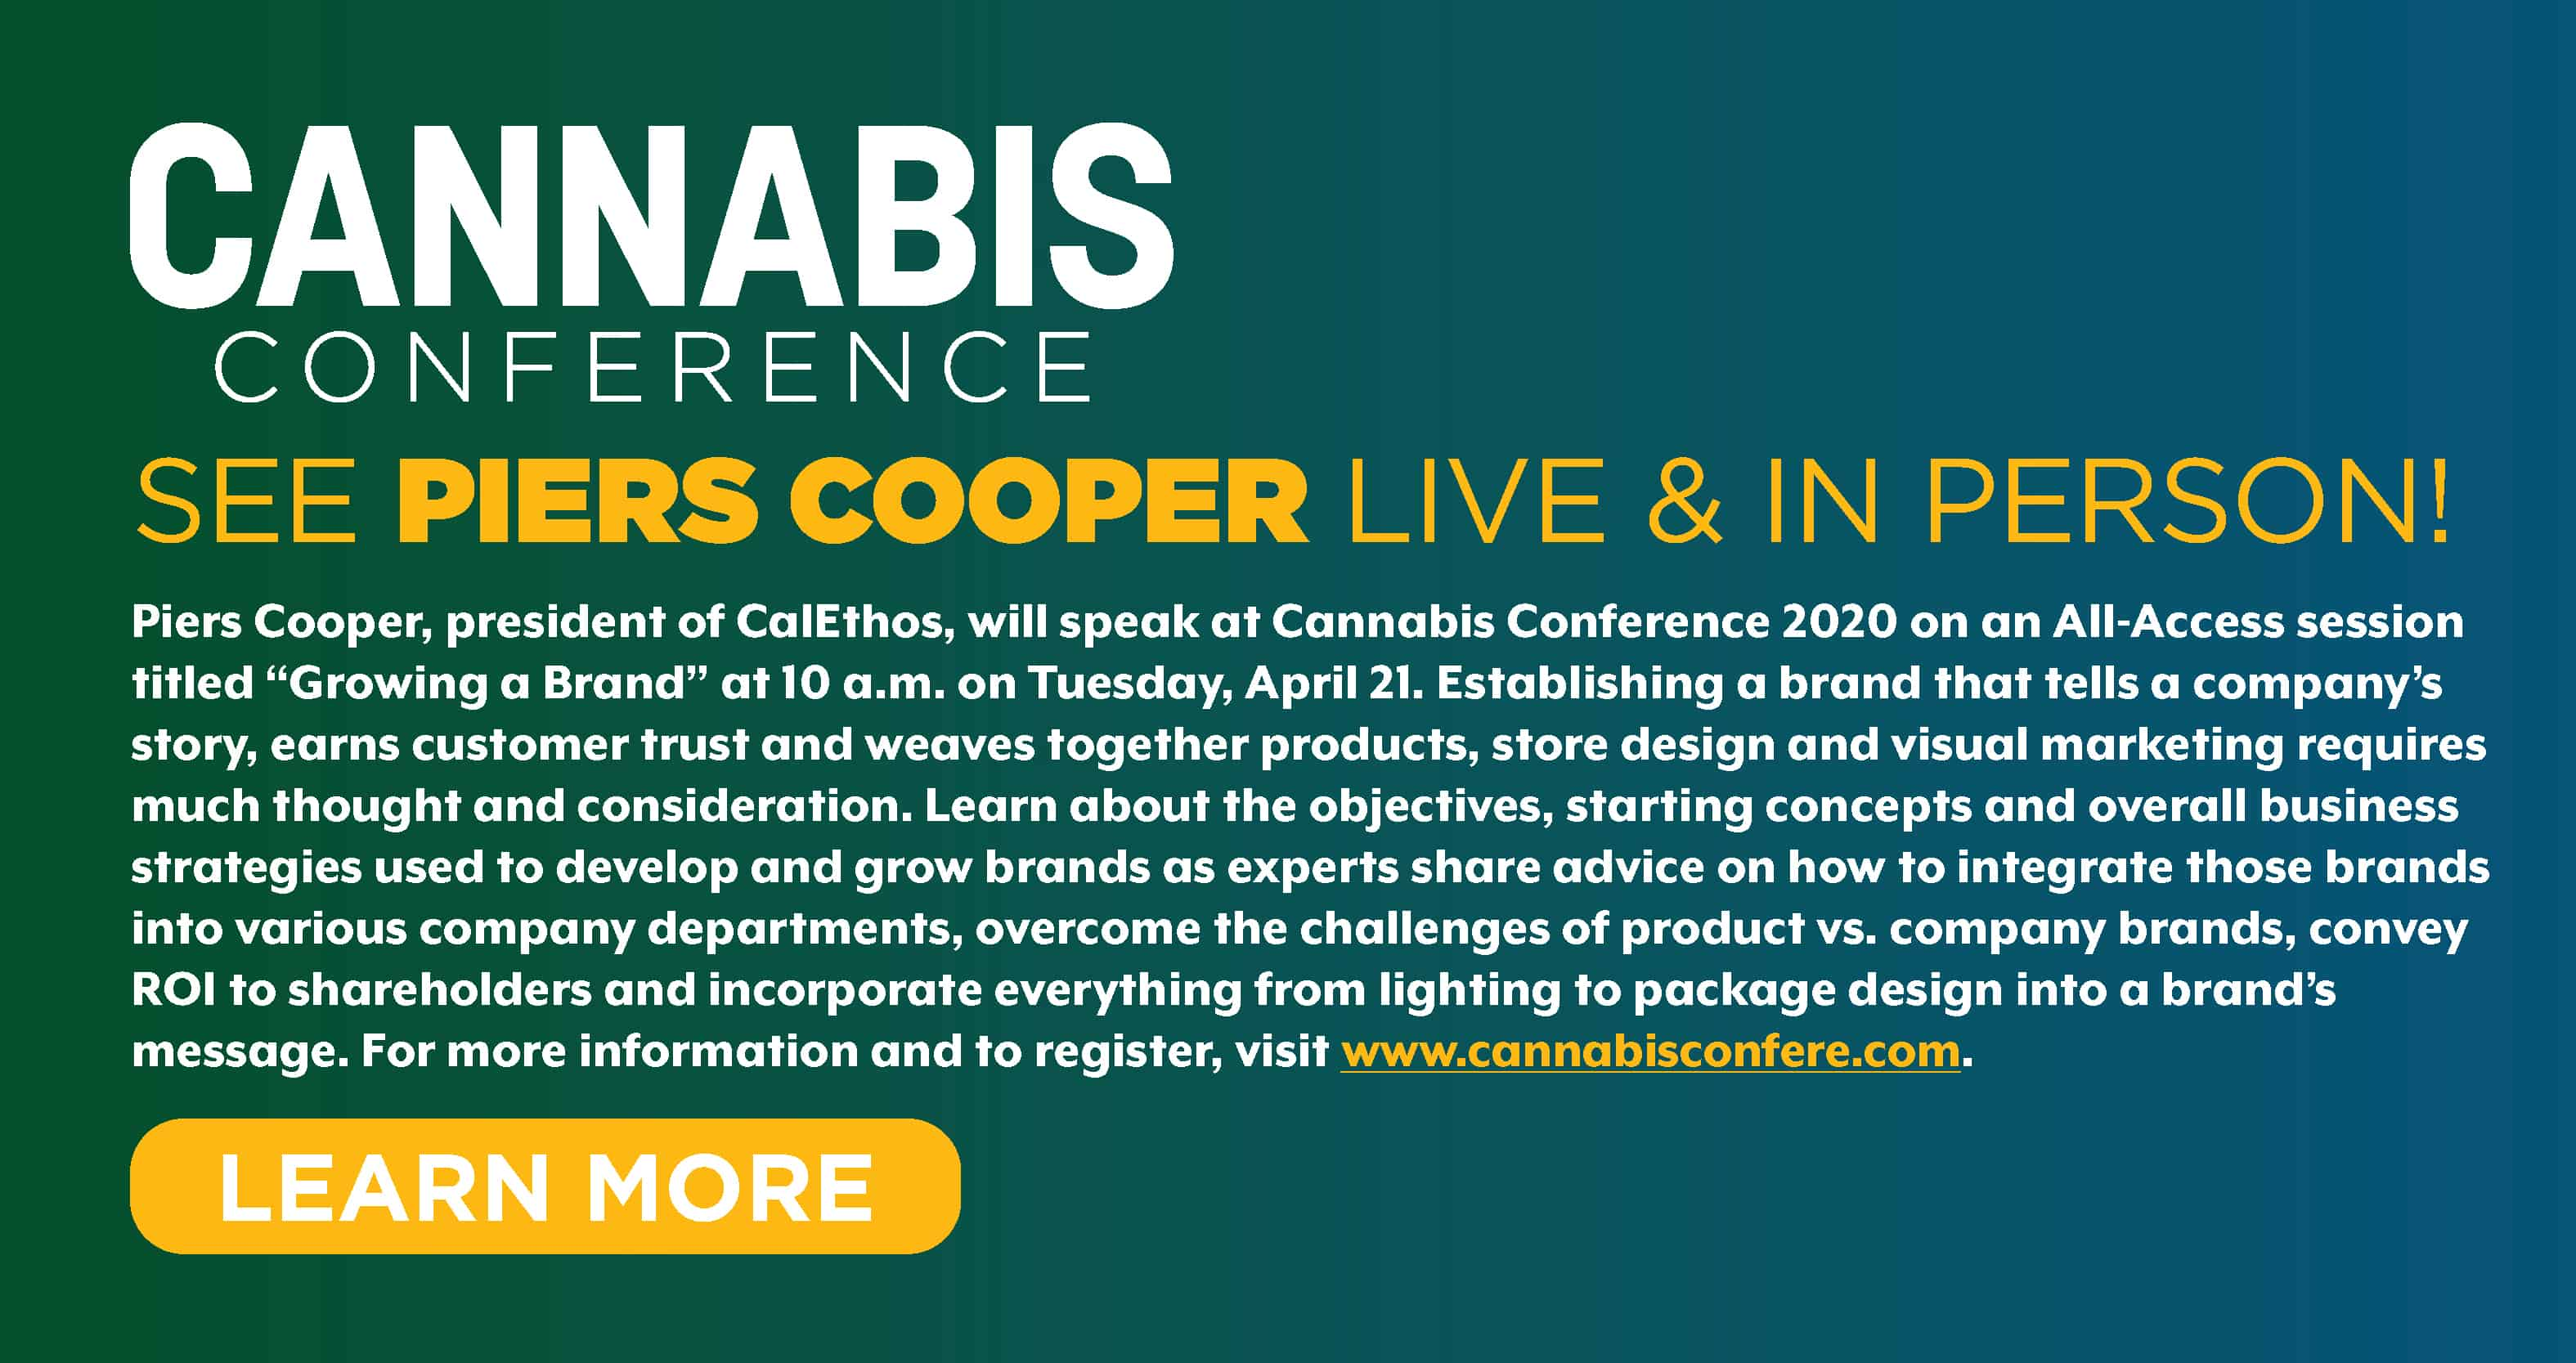 piers cooper cannabis conference